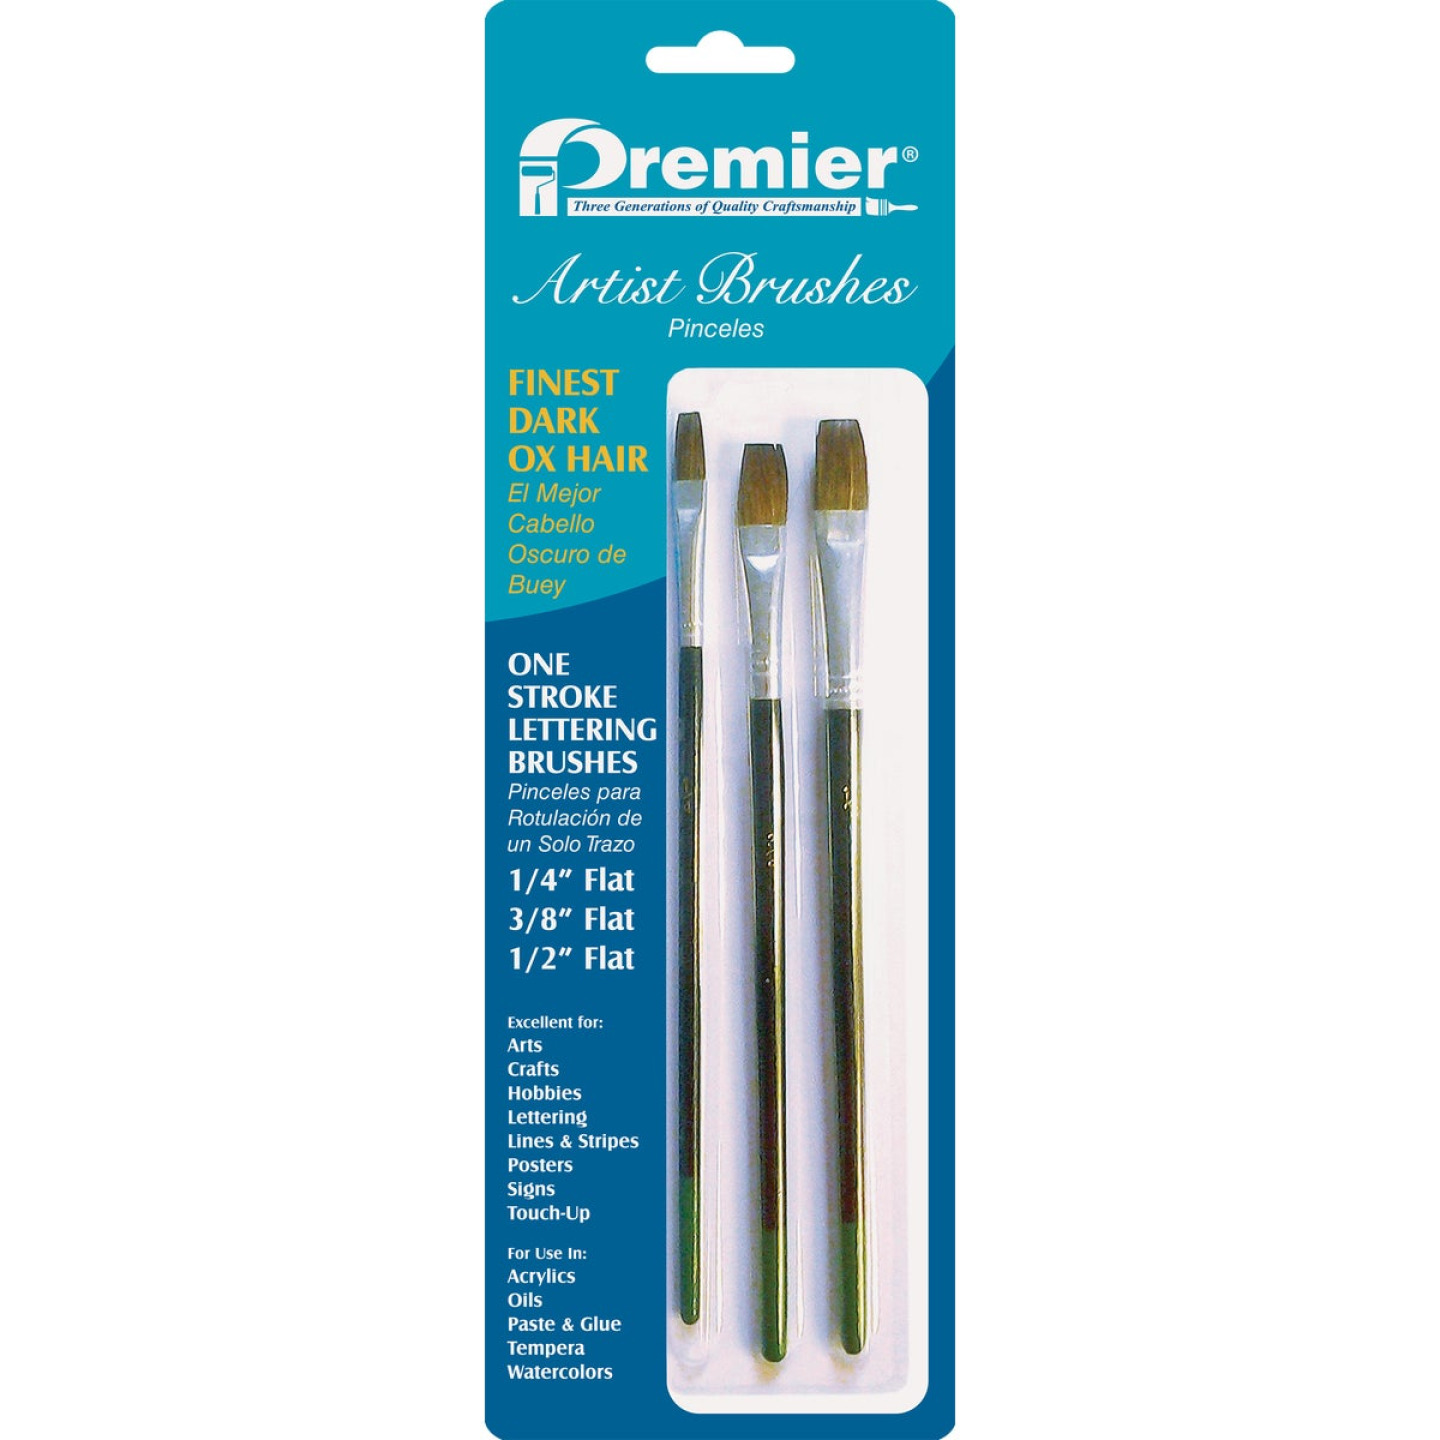 Premier Assorted Dark Ox Hair Artist Brushes (3 Pieces) Image 2